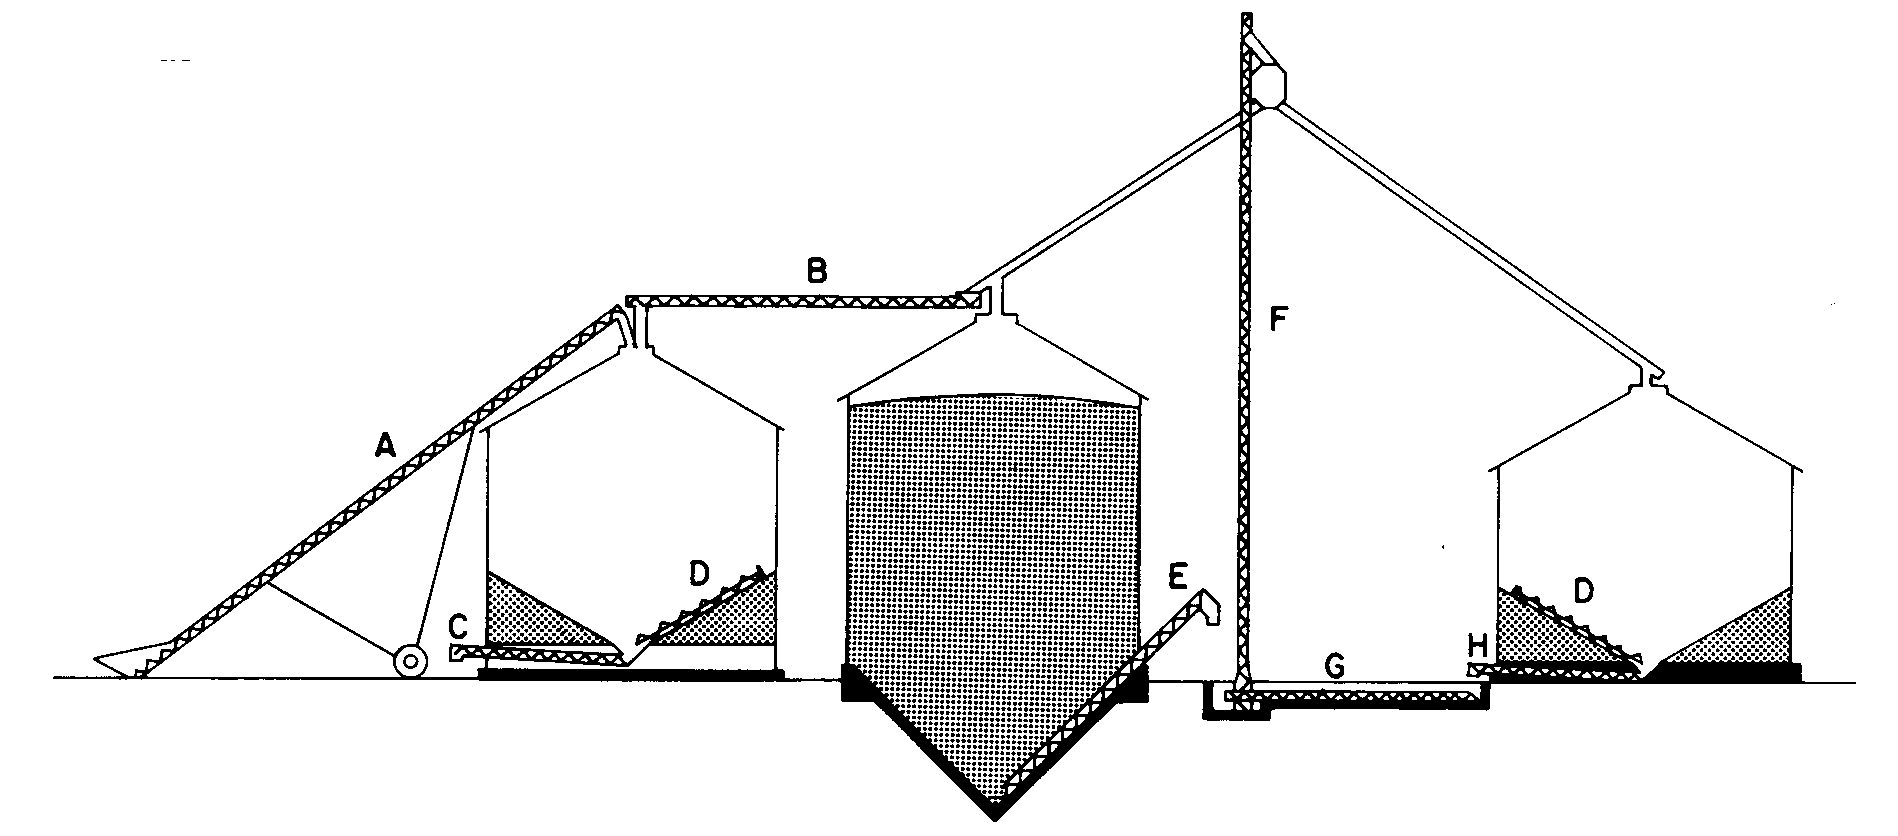 A. transport auger. B. horizontal overhead auger. C. unloading auger in plenum of drying bin. D. sweep auger. E. unloading auger for cone-bottom bin